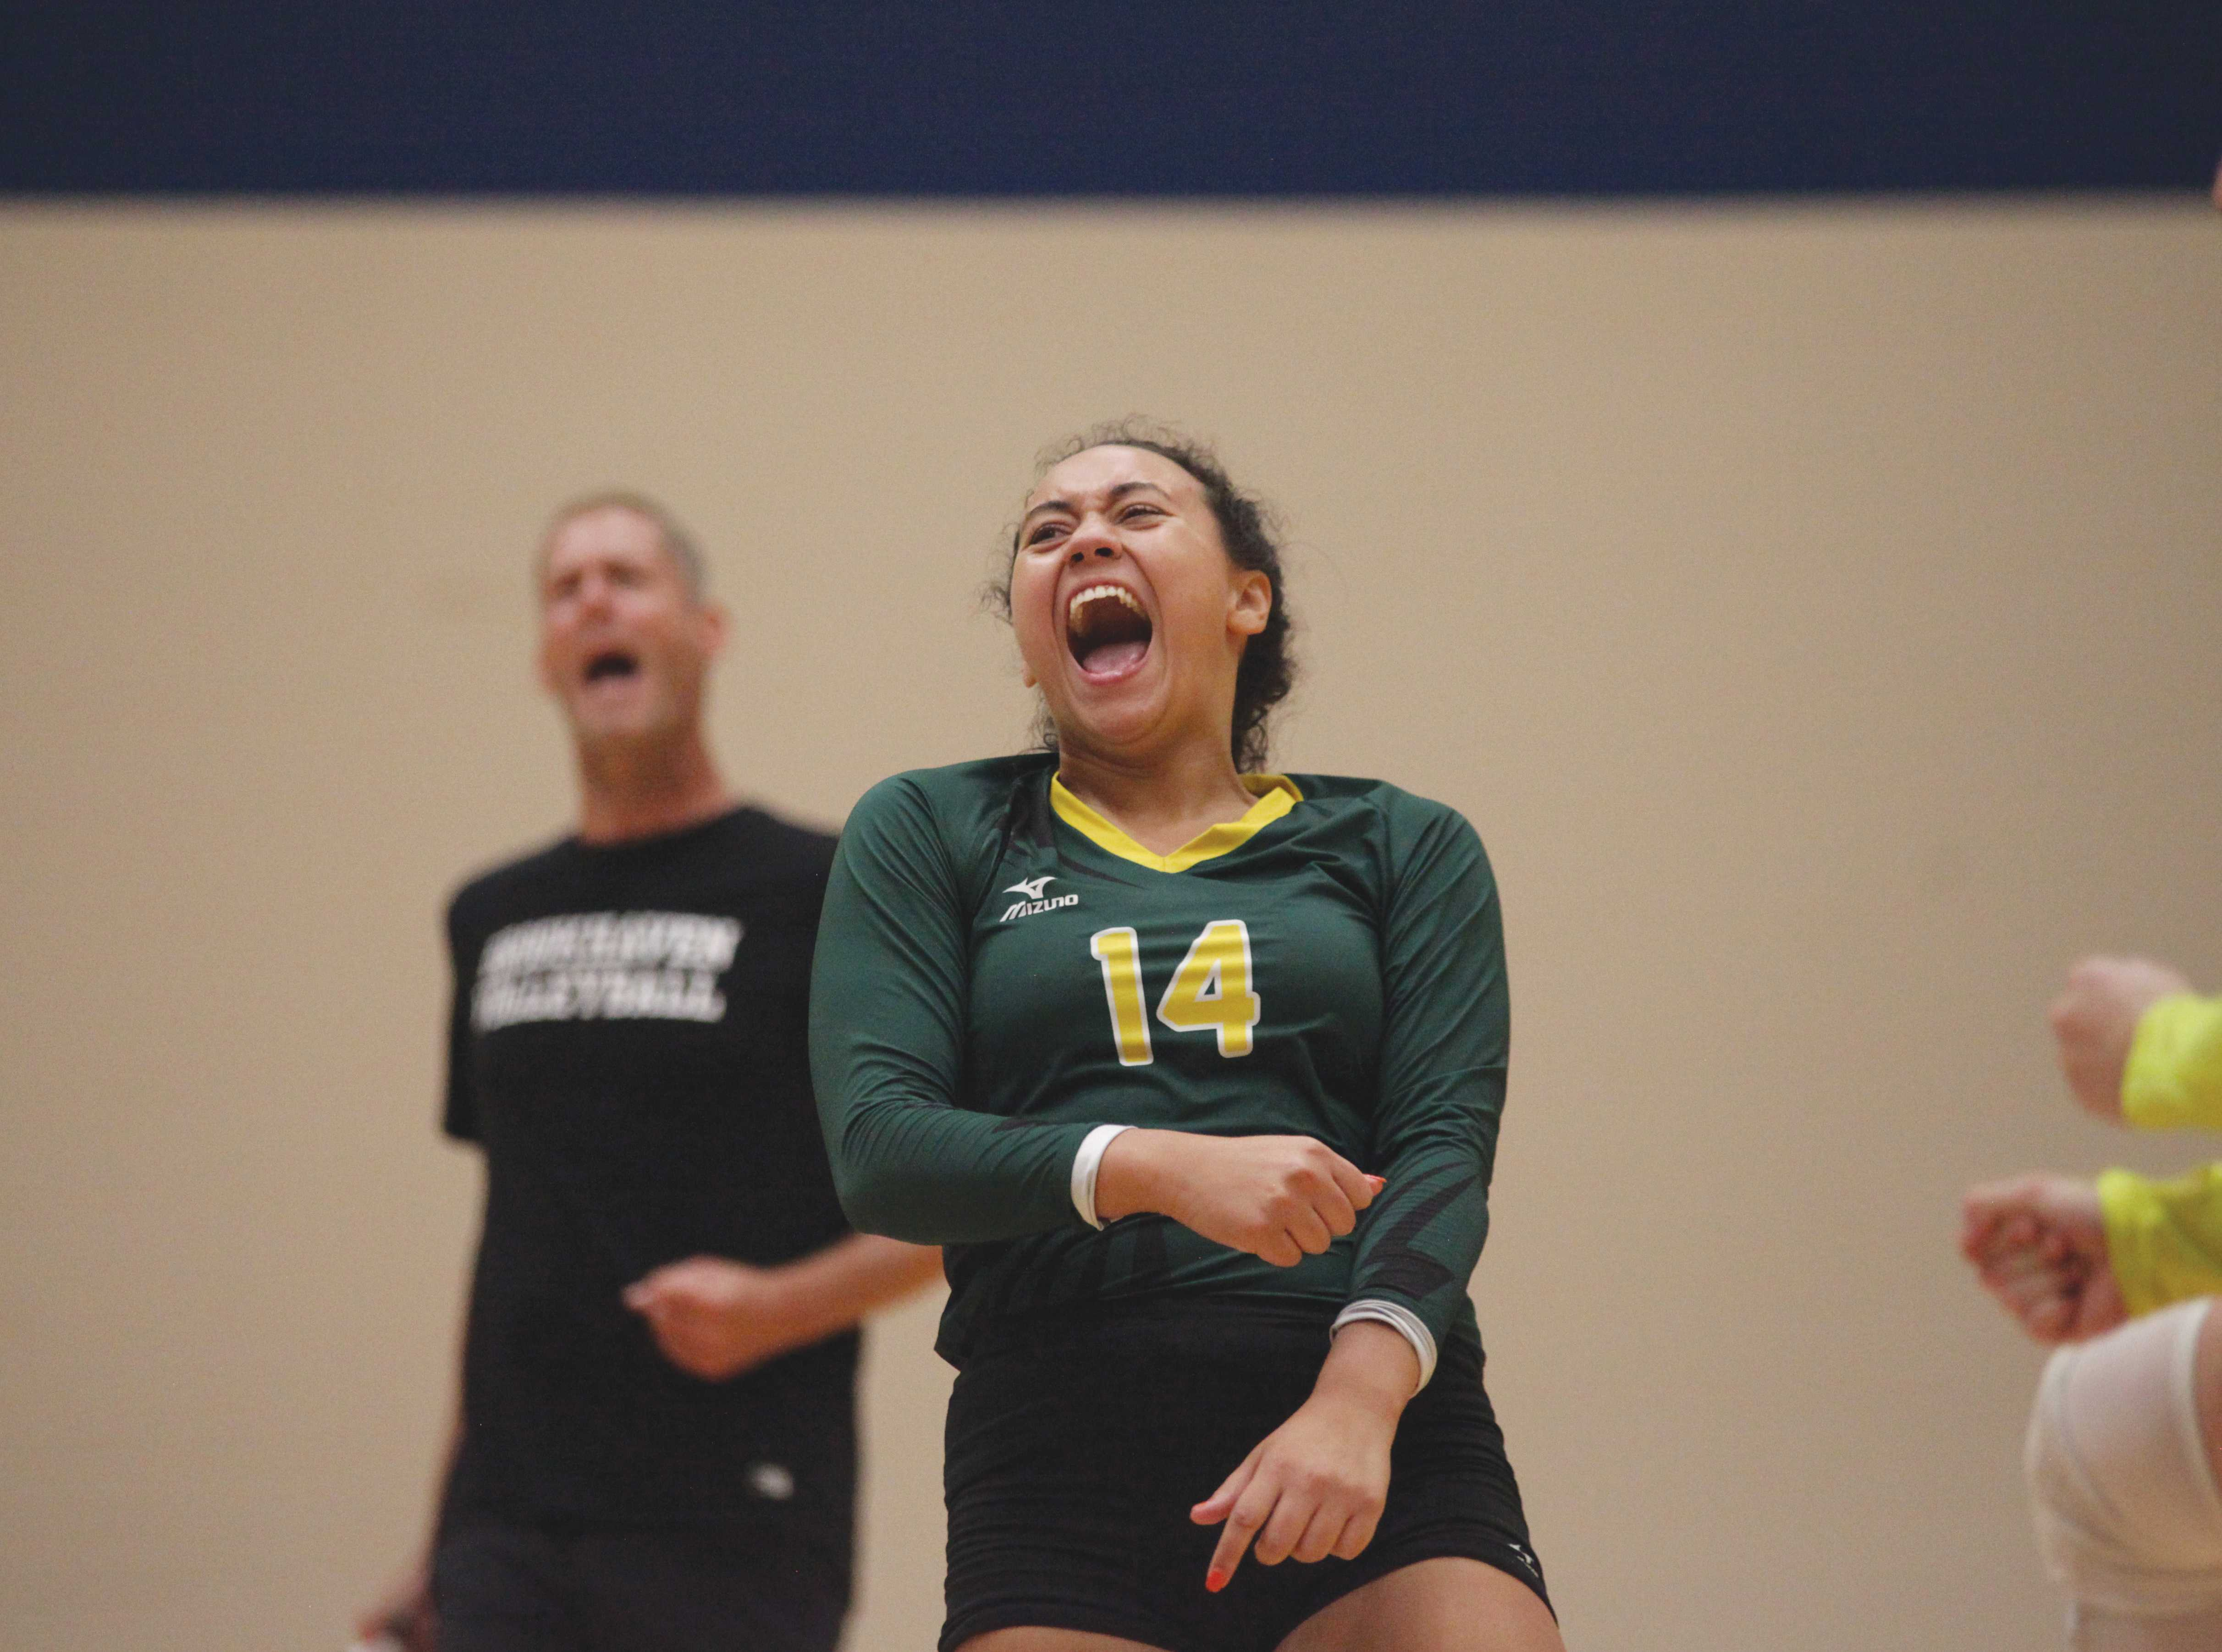 <strong>Photos by Malen Blackmon |</strong>Lady Bears setter Morgan Frisby (#14) celebrates after the winning the point of the match.